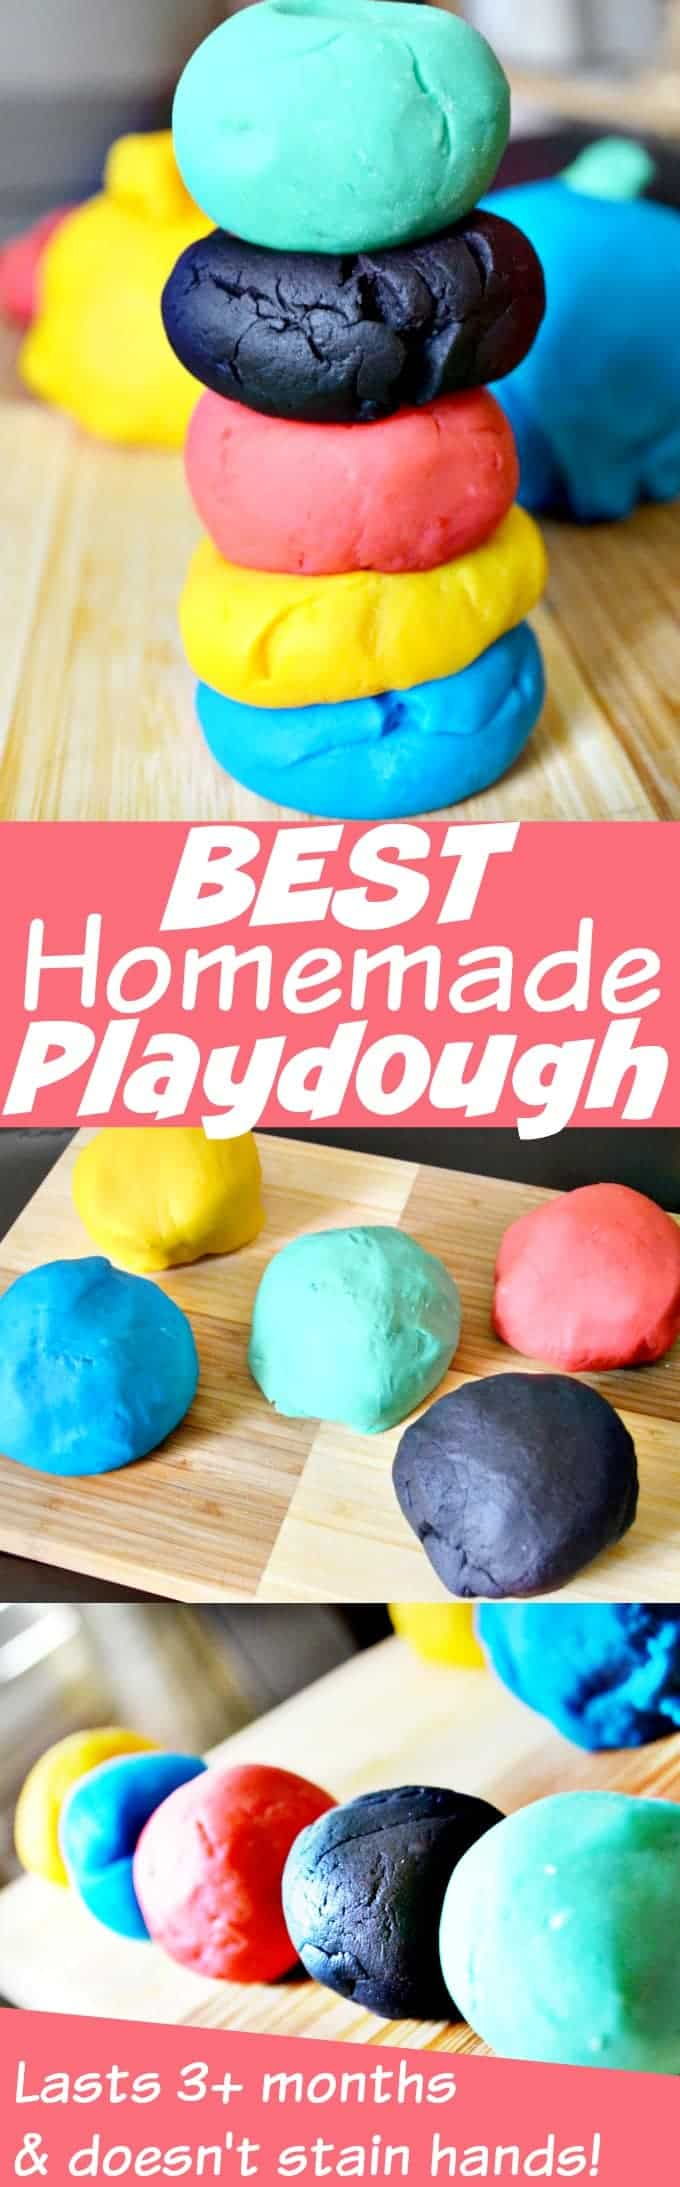 The Best Homemade Playdough Recipe Ever from Domestic Superhero